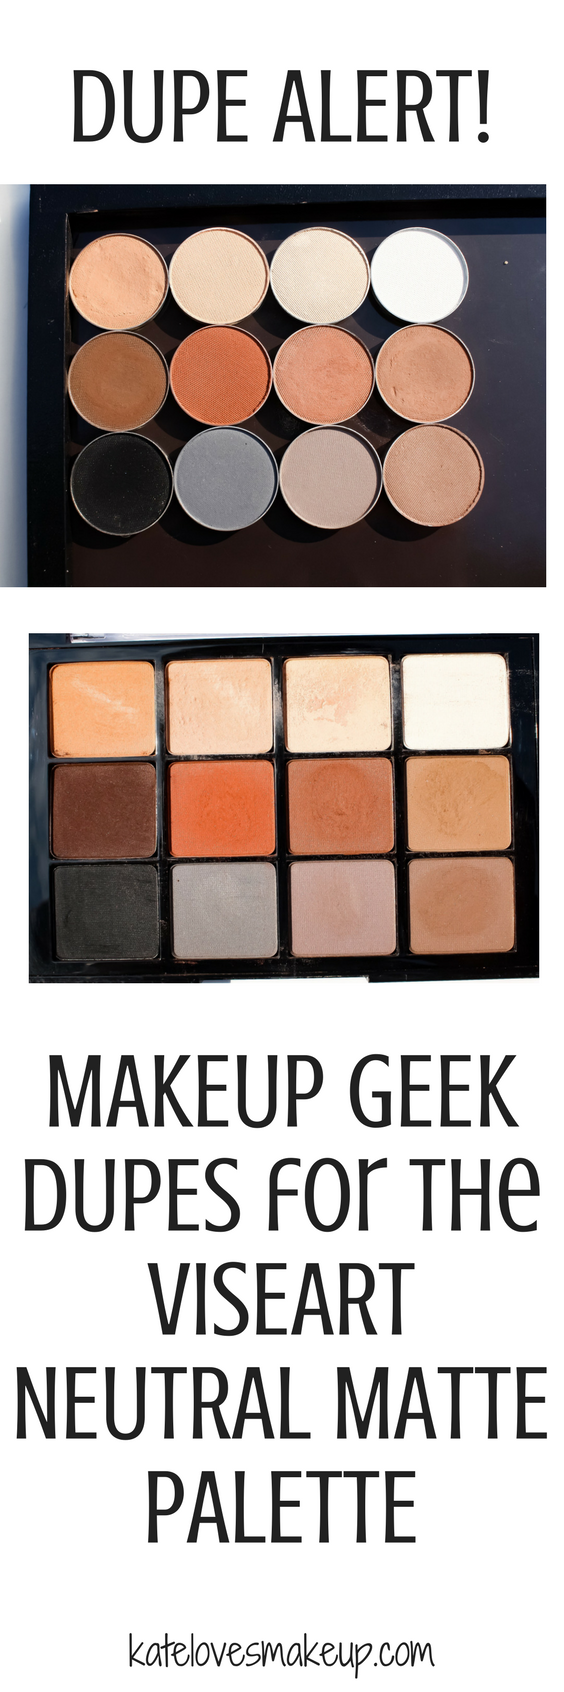 Makeup Dupes Viseart Neutral Matte Palette Makeup dupes